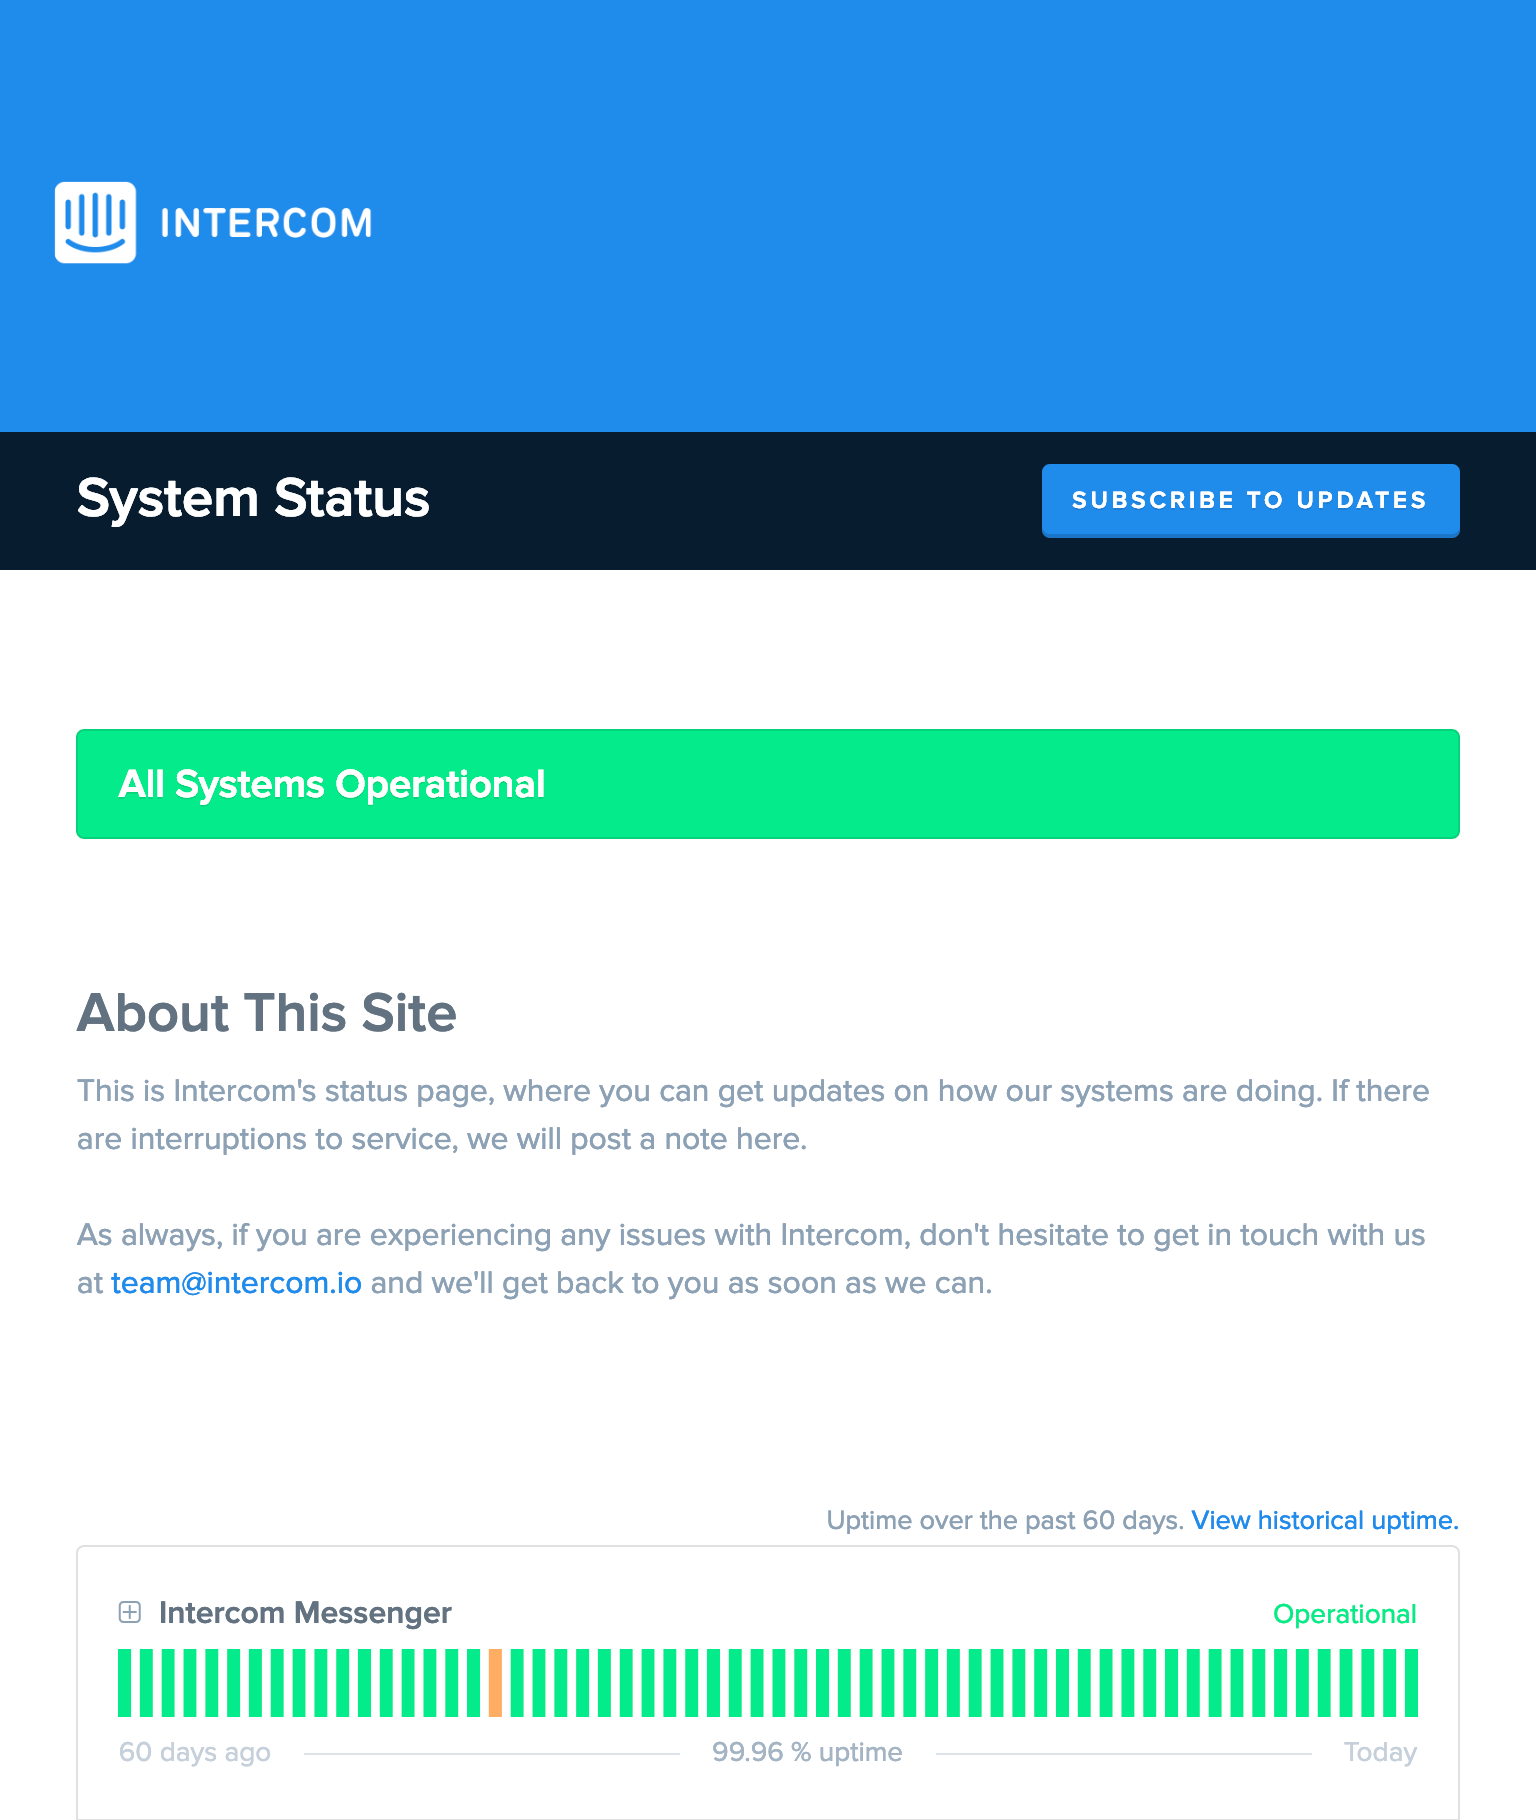 Status-Checkliste von Intercom